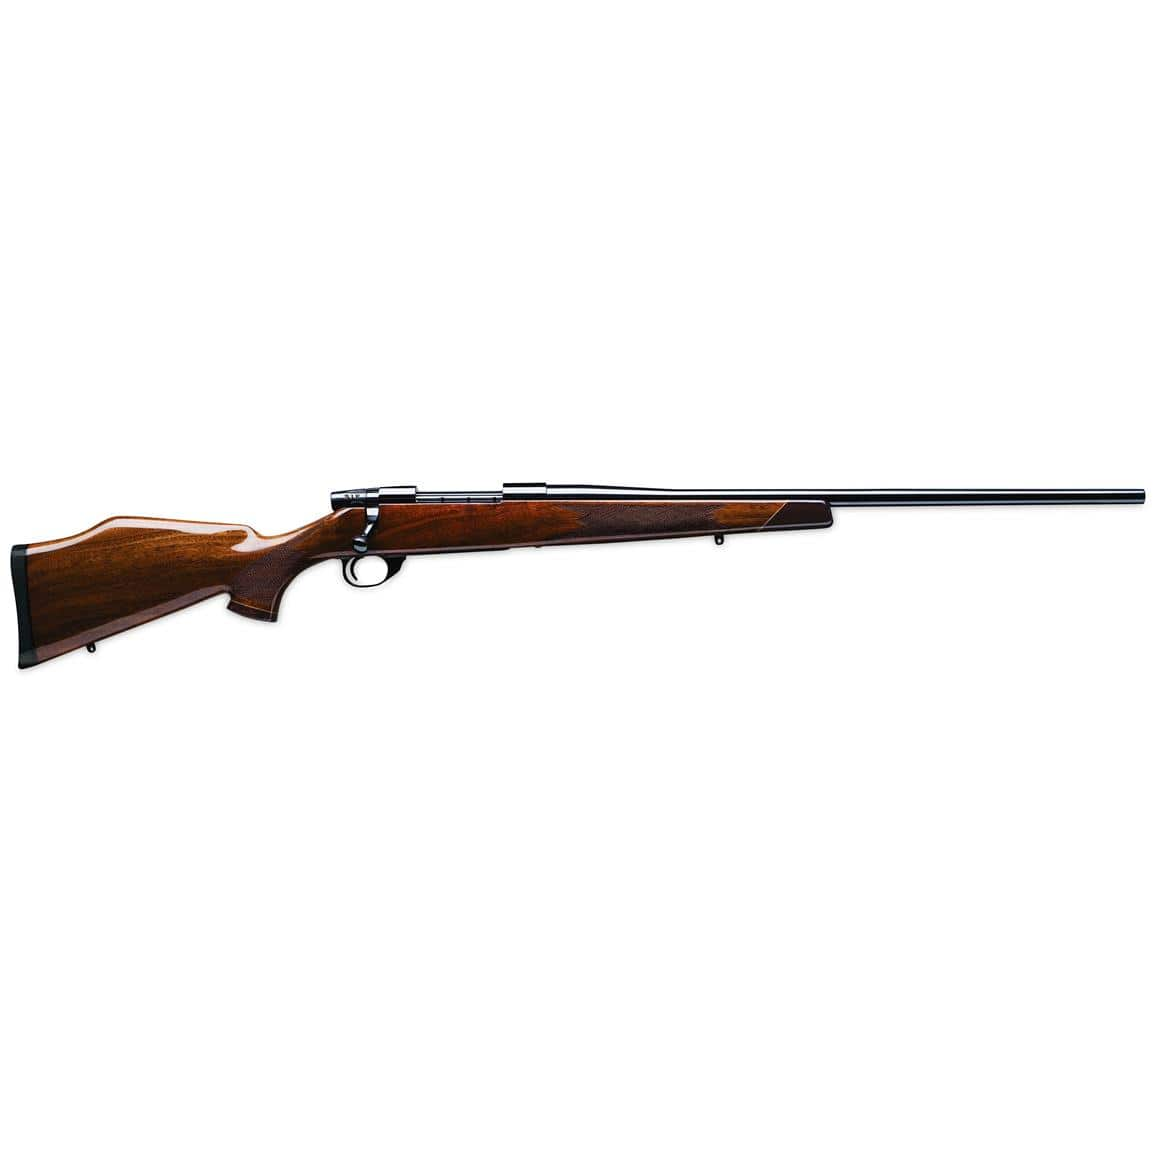 "vanguard weatherby 2 deluxe sportsman  24"" 308 at wal-mart for 649 b&m"